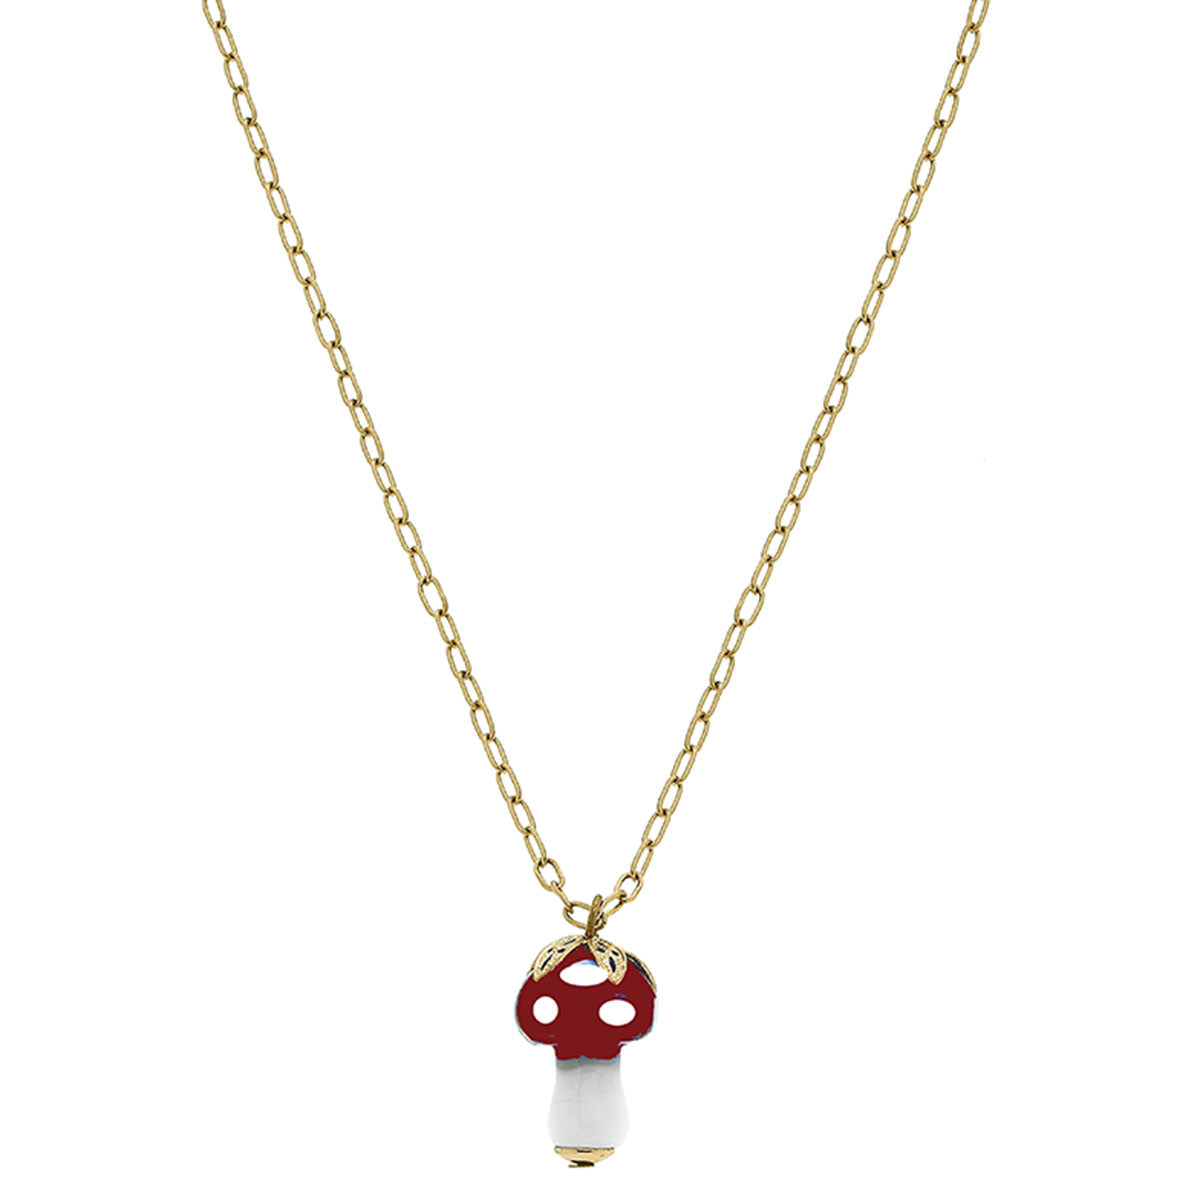 Murano Glass Mushroom Charm Paperclip Chain Necklace in Red